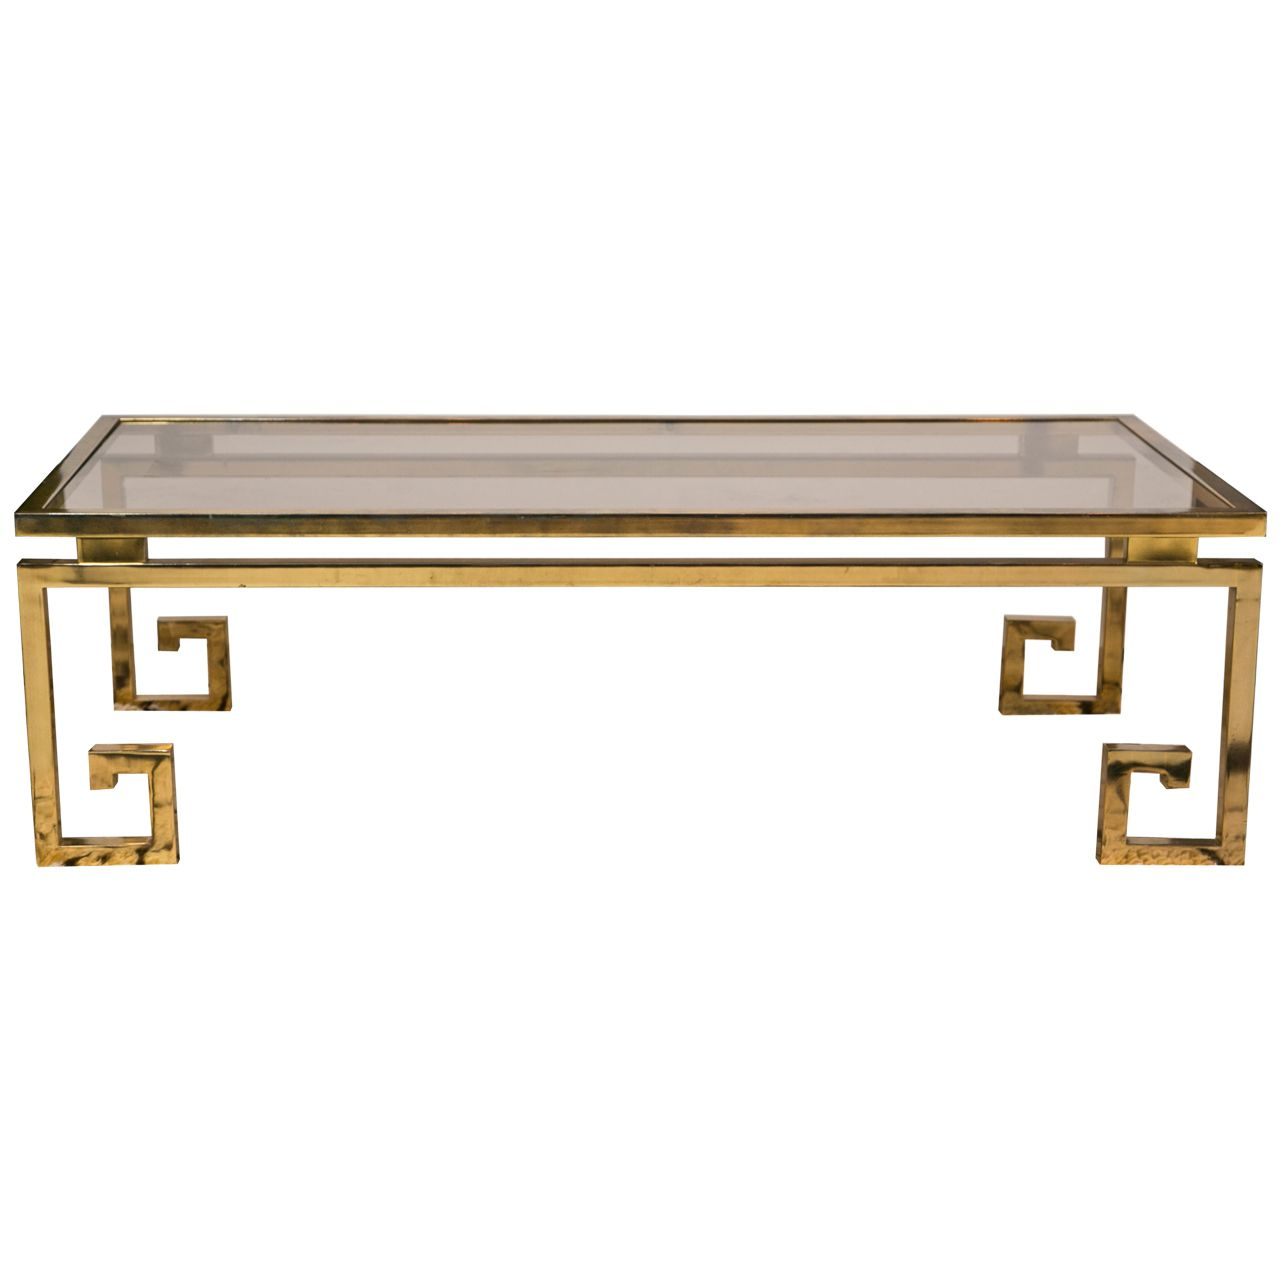 1970's French Brass Coffee Table With Stylized Greek Key